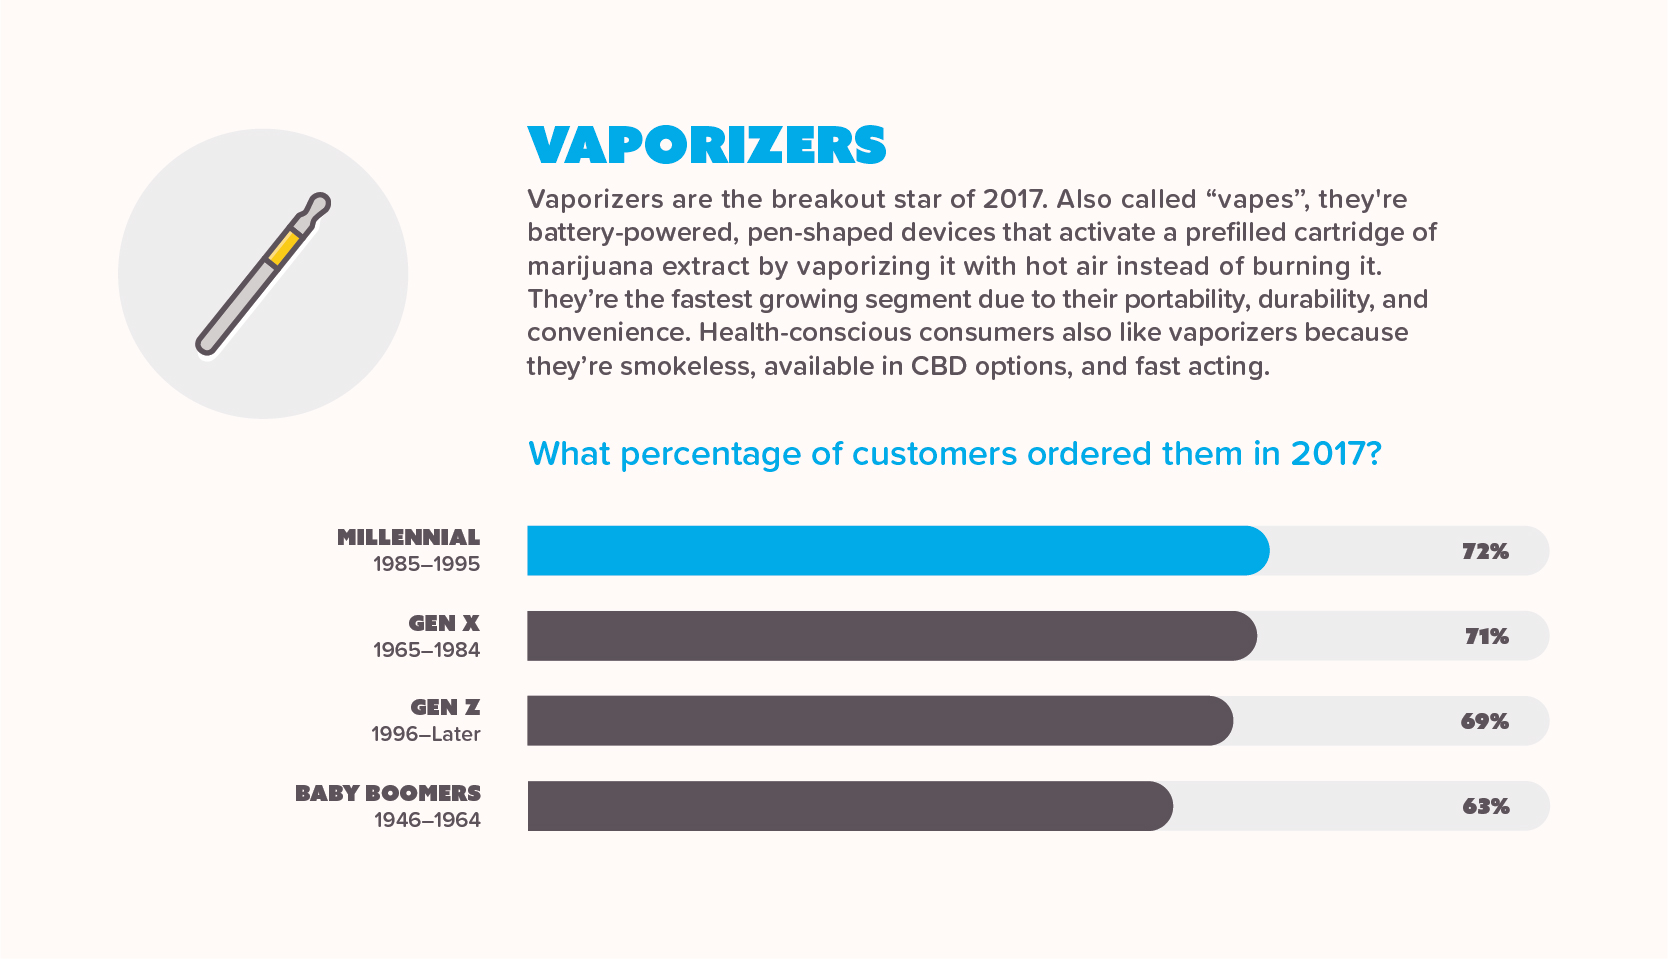 Infographic showing sales of marijuana vaporizers per generation in 2017